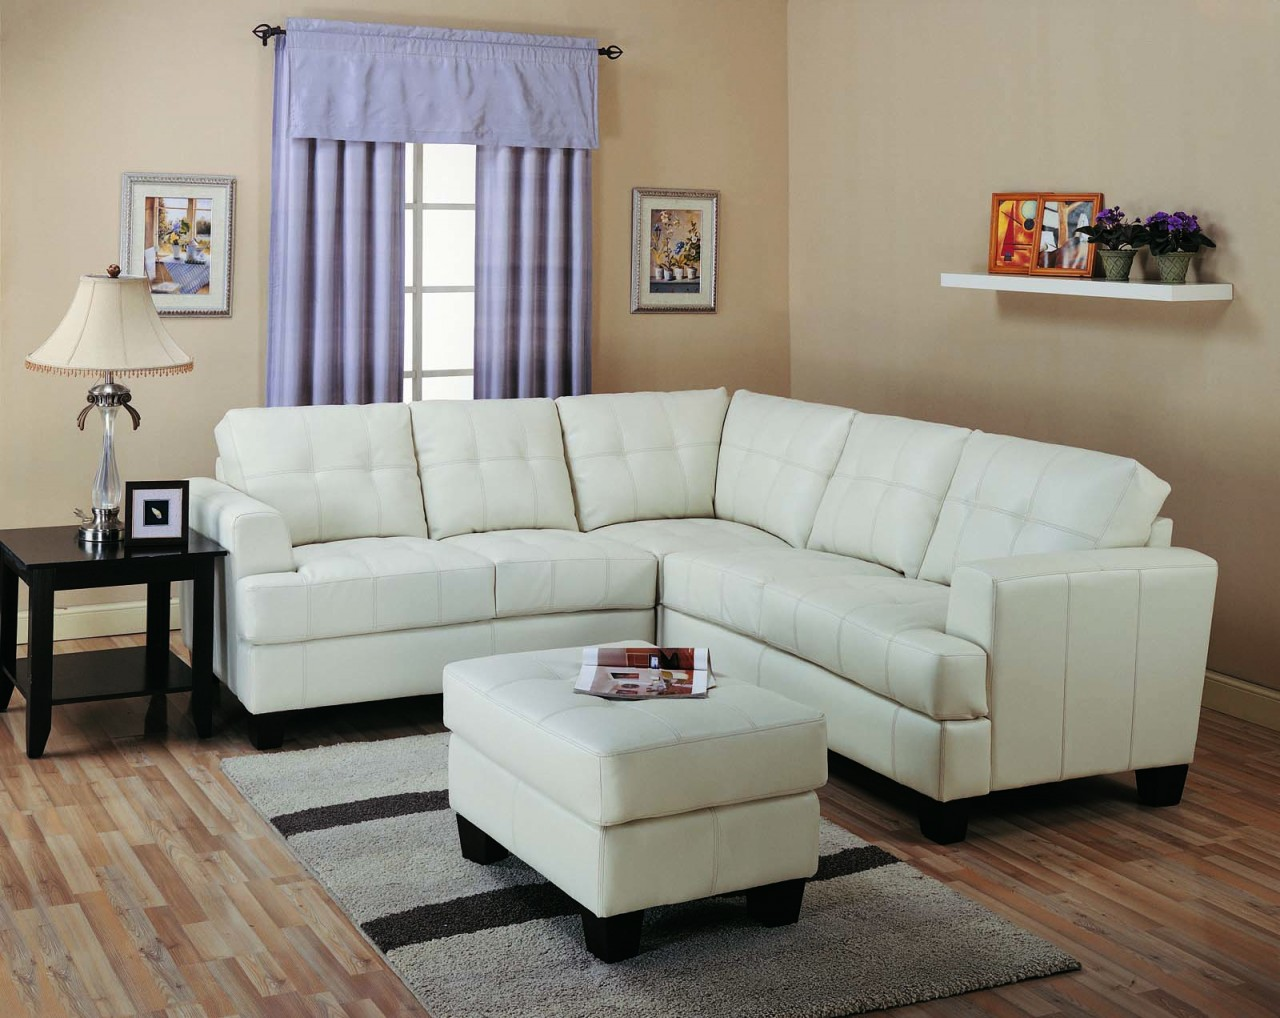 Types of best small sectional couches for small living for Sofas for small rooms